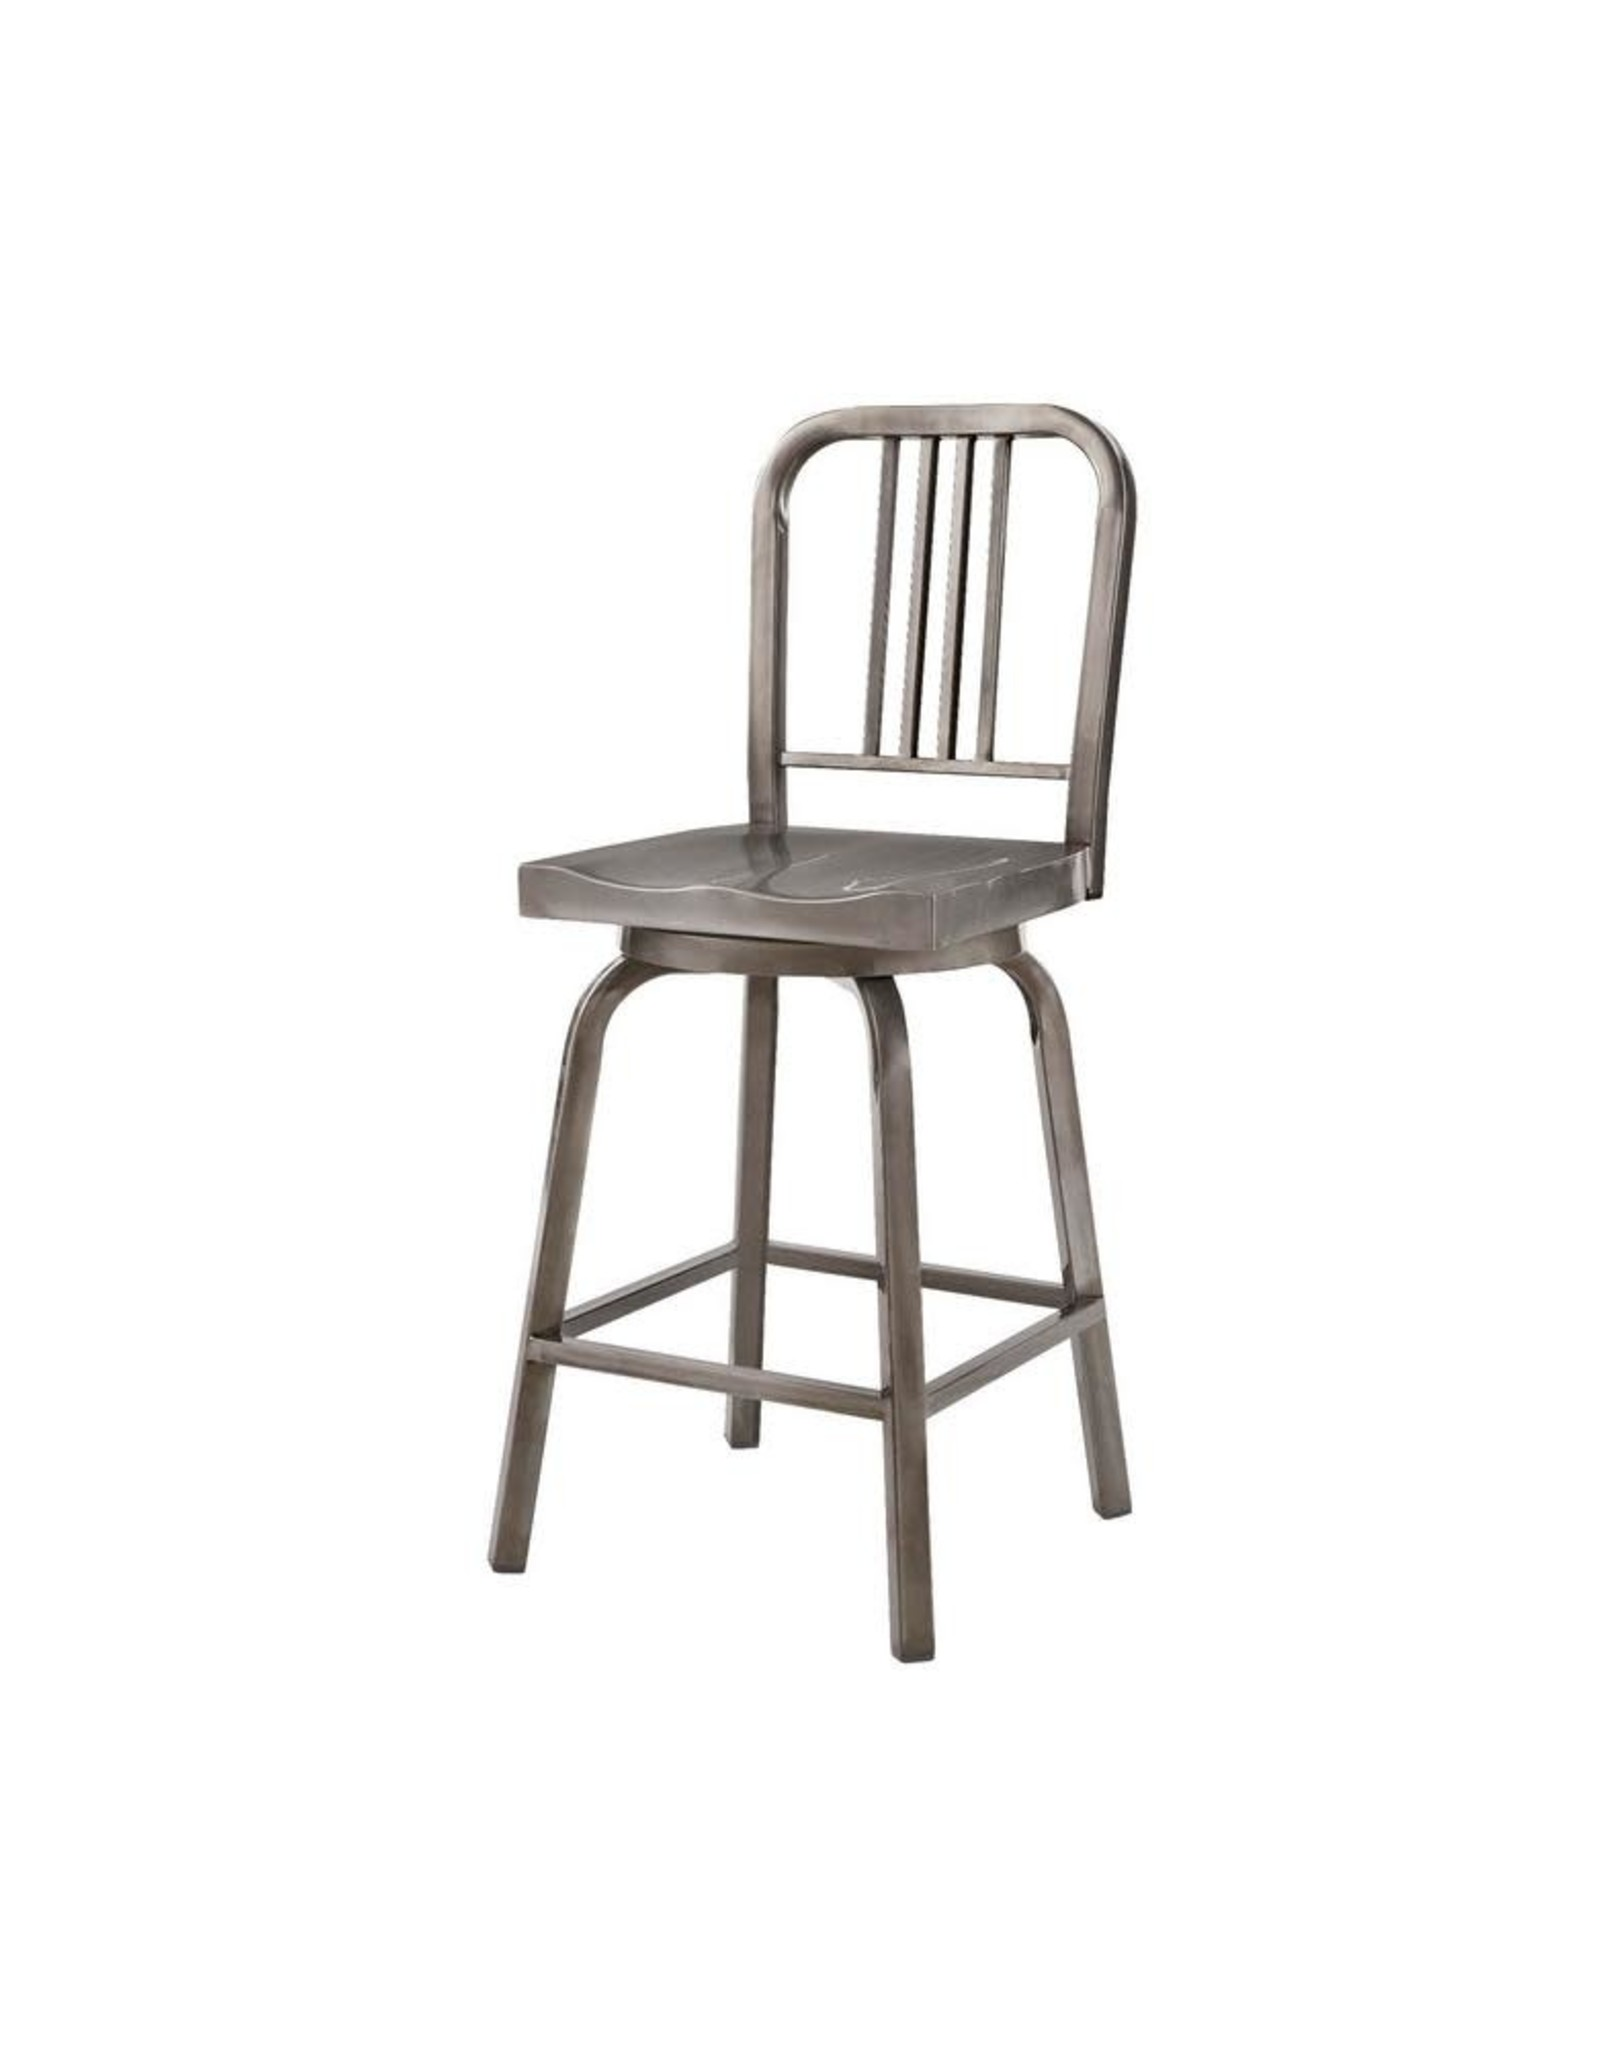 StyleWell Kipling Gunmetal Gray Metal Swivel Counter Stool with Back (17.32 in. W x 40.55 in. H)